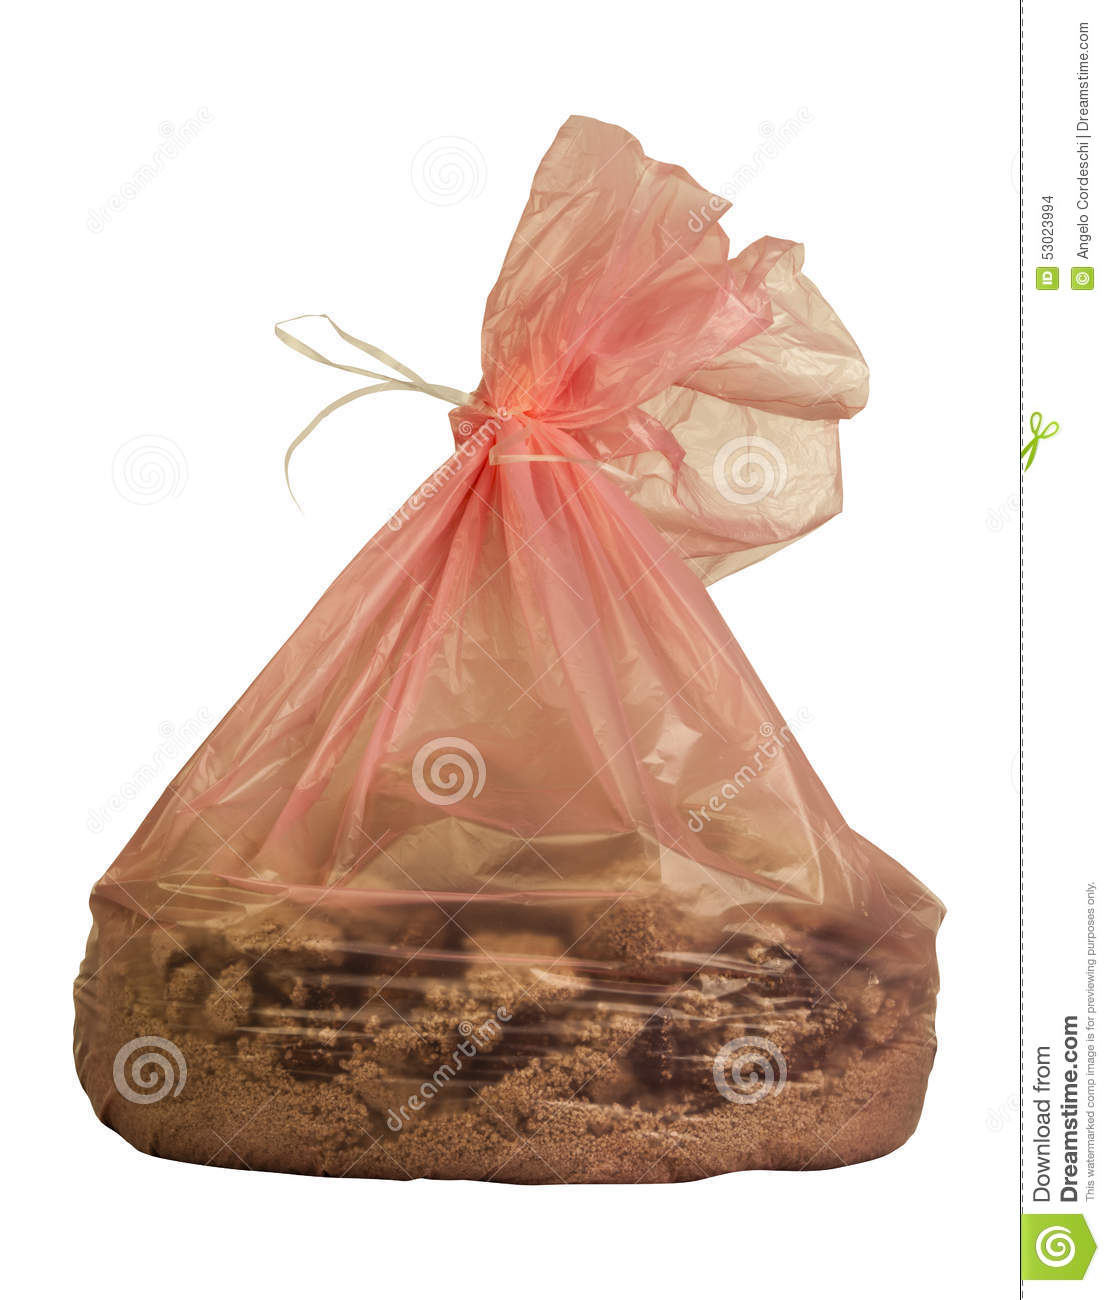 Waste bag of cat litter - Cat In A Bag PNG